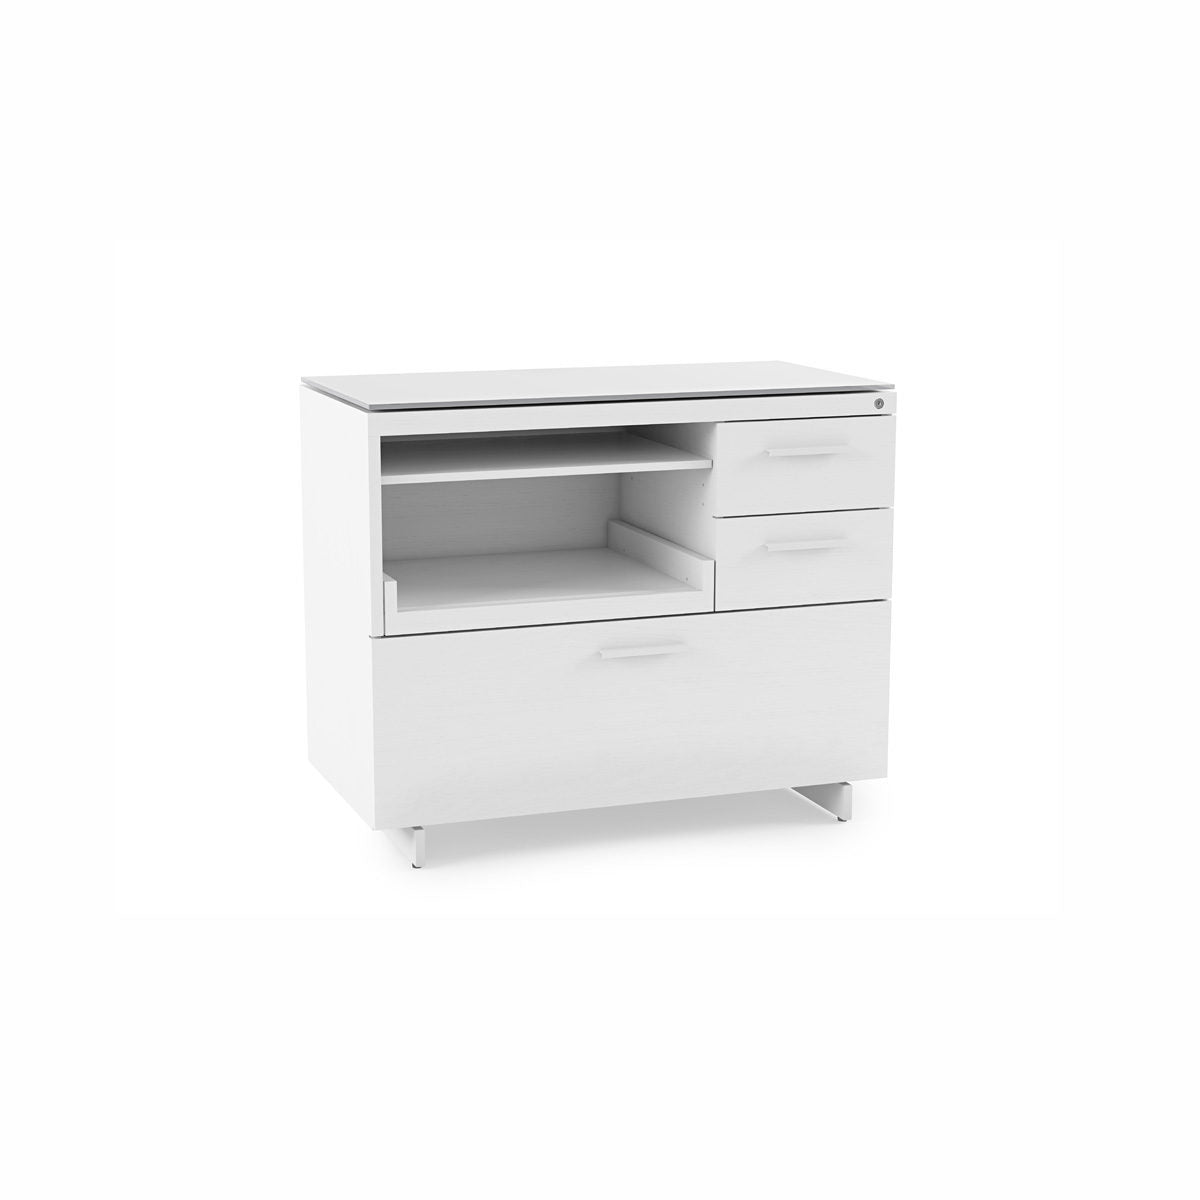 Centro 6417 Multifunction File Cabinet